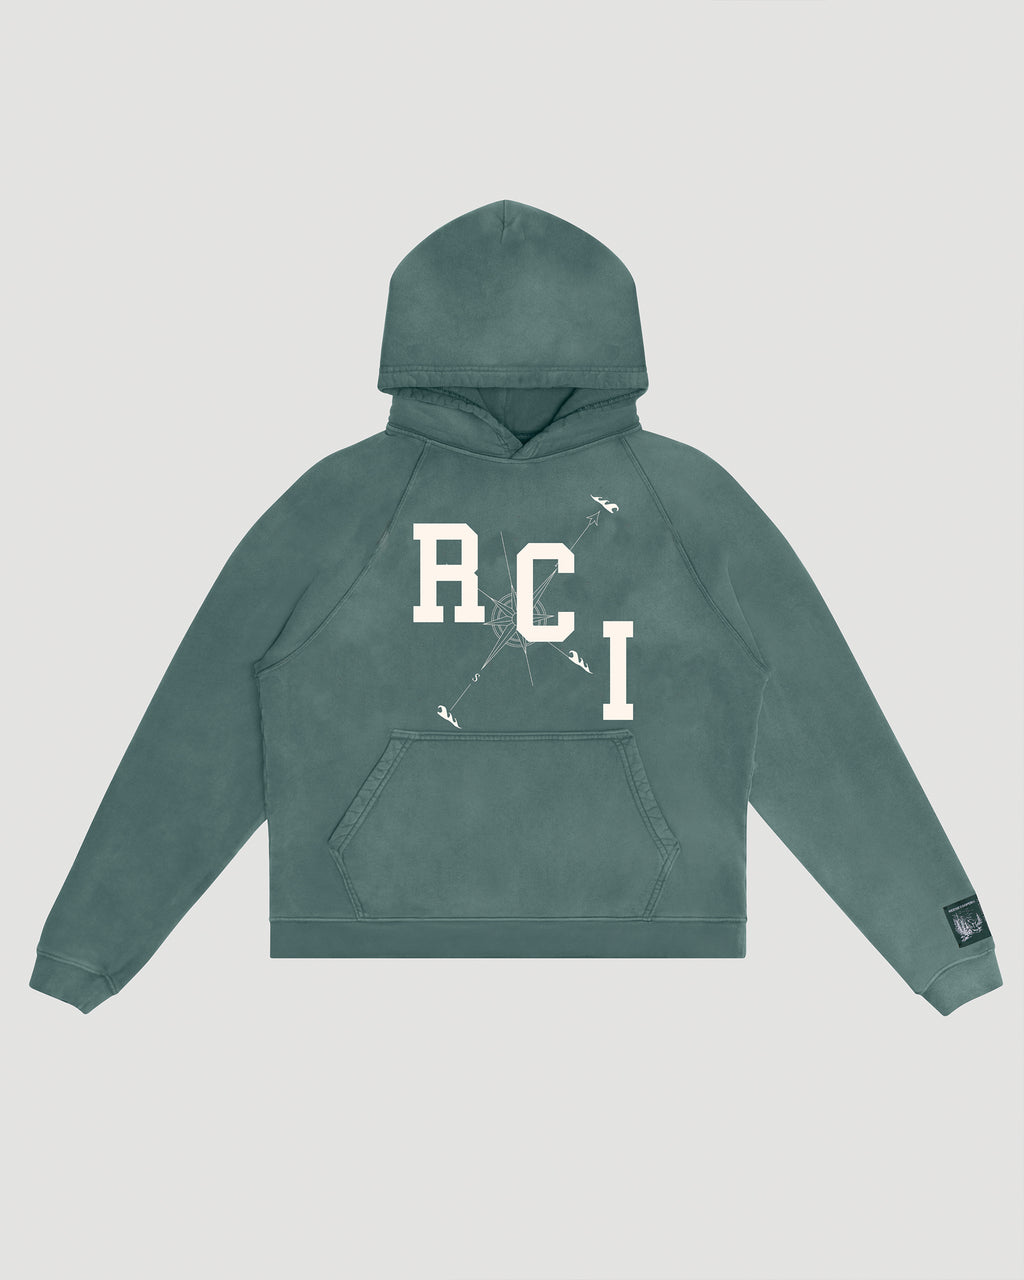 RCI Compass Aged Hooded Sweatshirt in Green